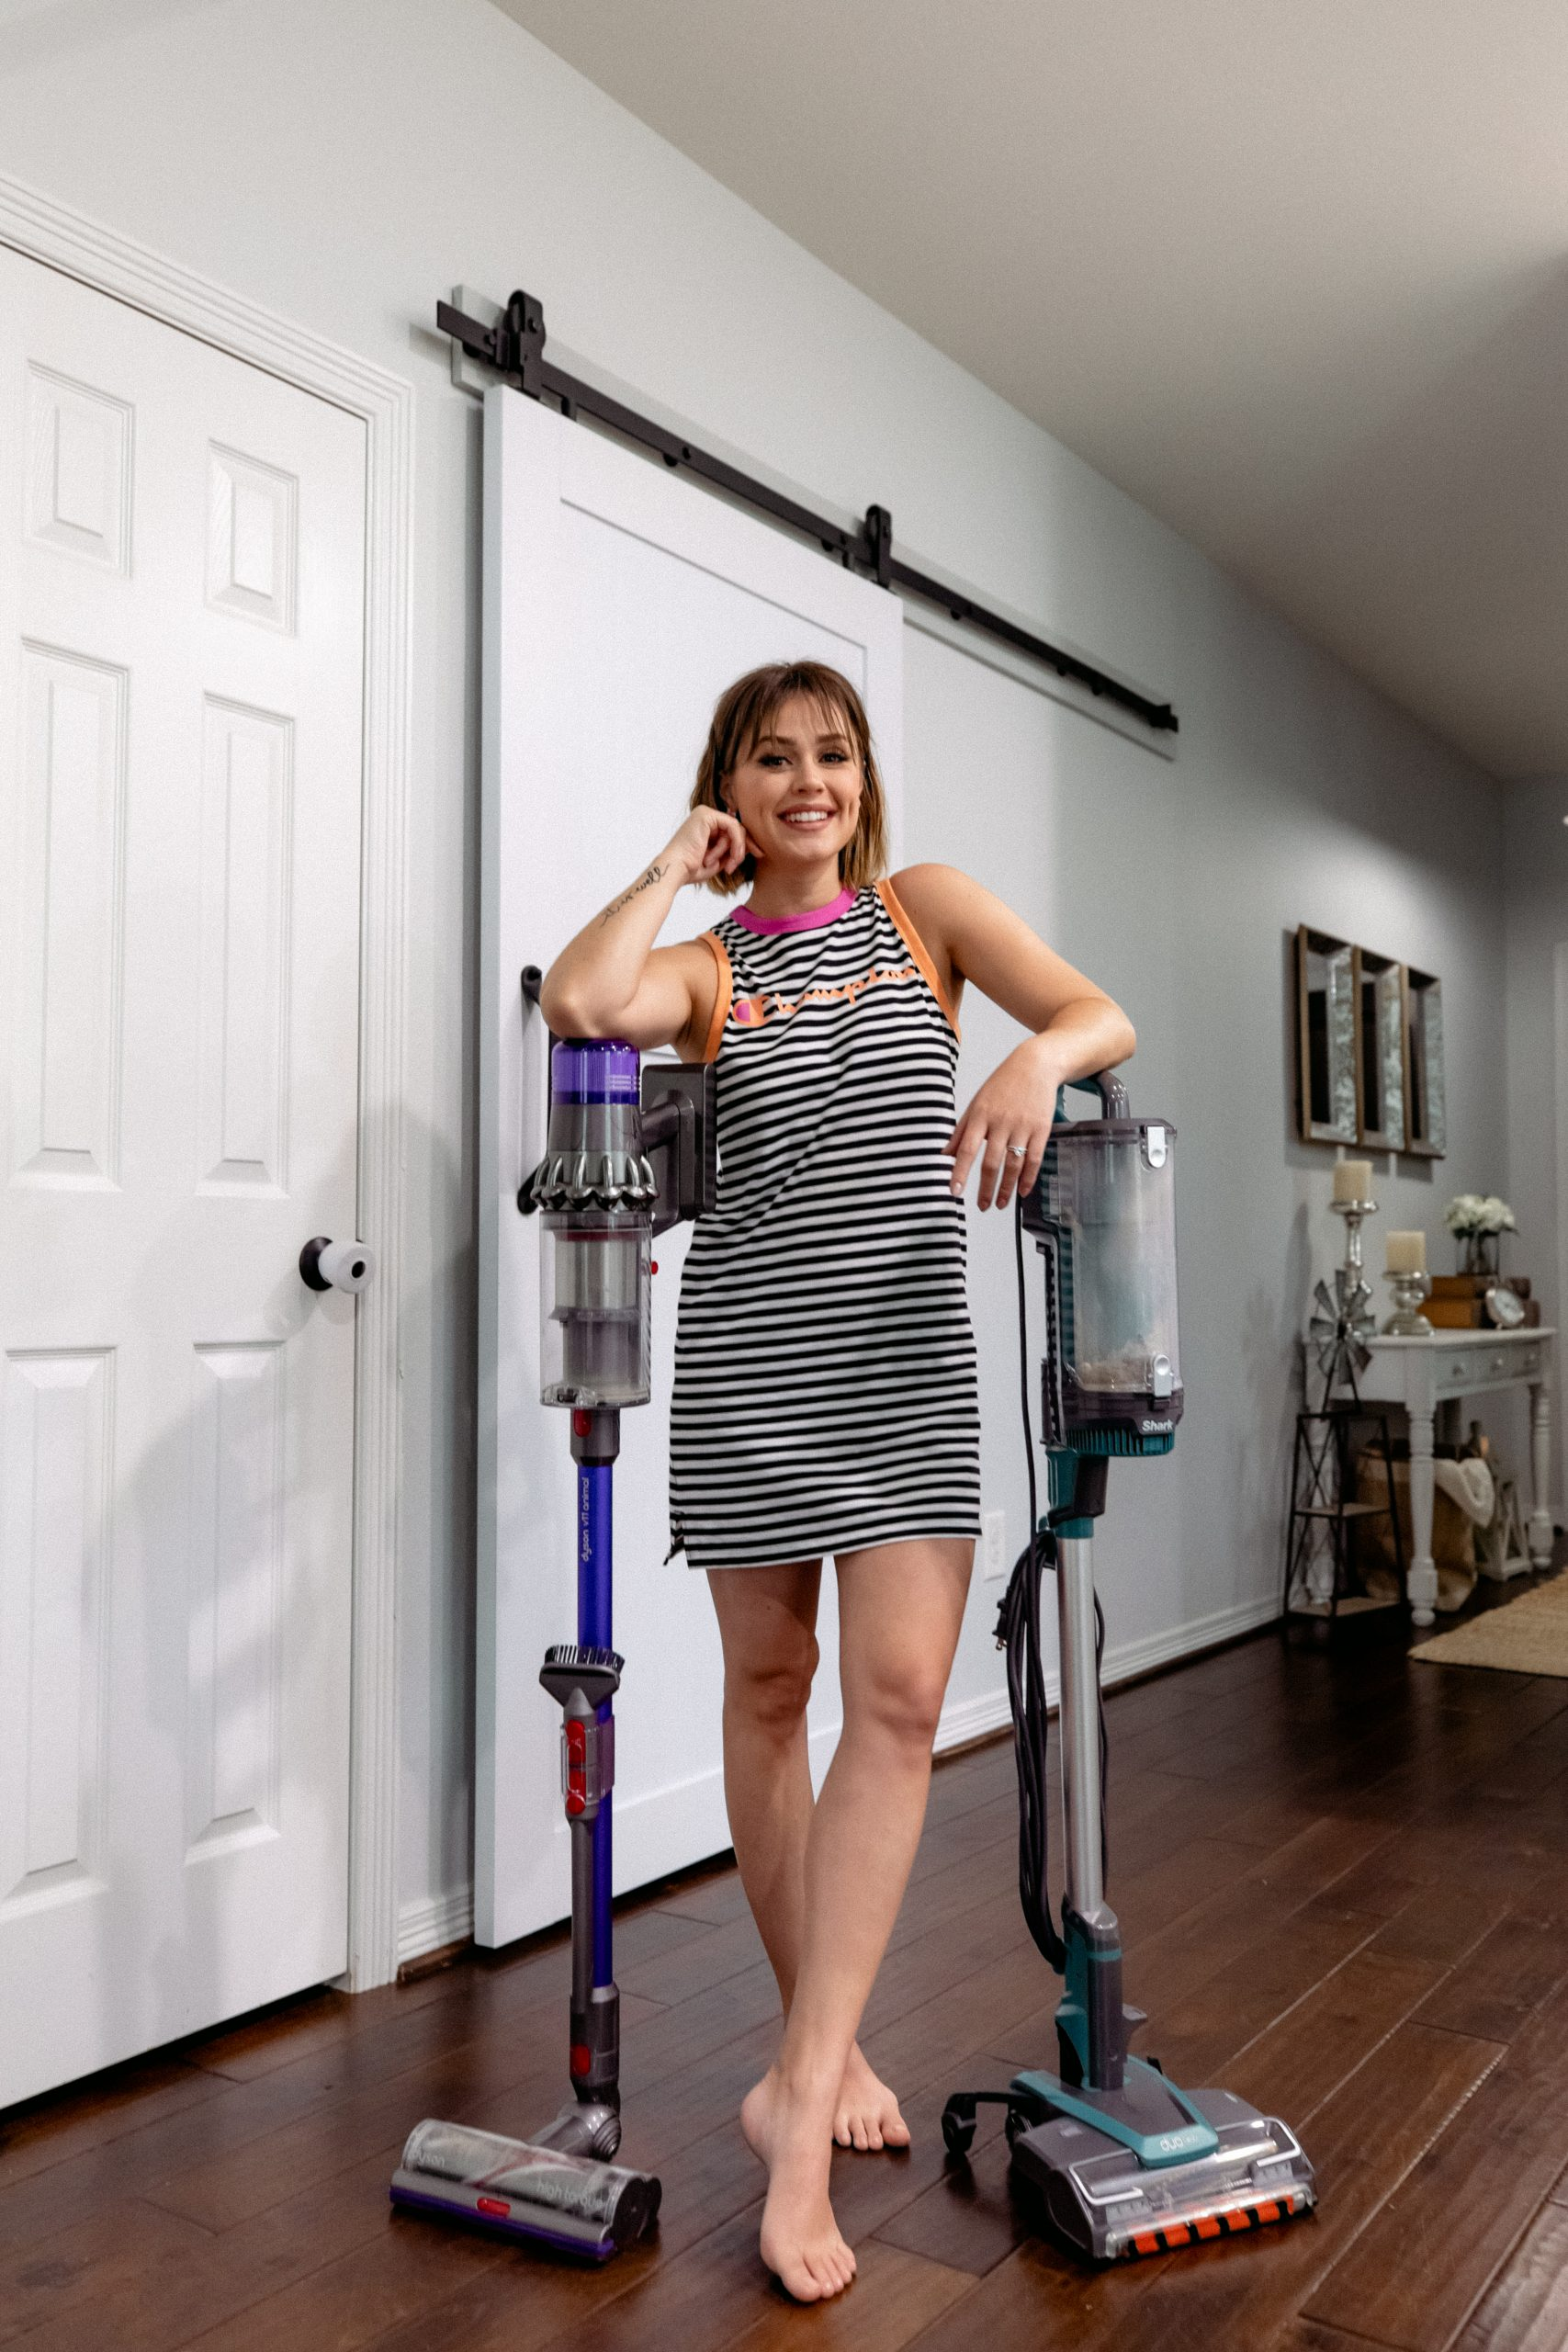 Looking to upgrade your vacuum? Dyson vs. Shark Vacuum, which one is better and worth the investment? Elly Brown shares her review on both!